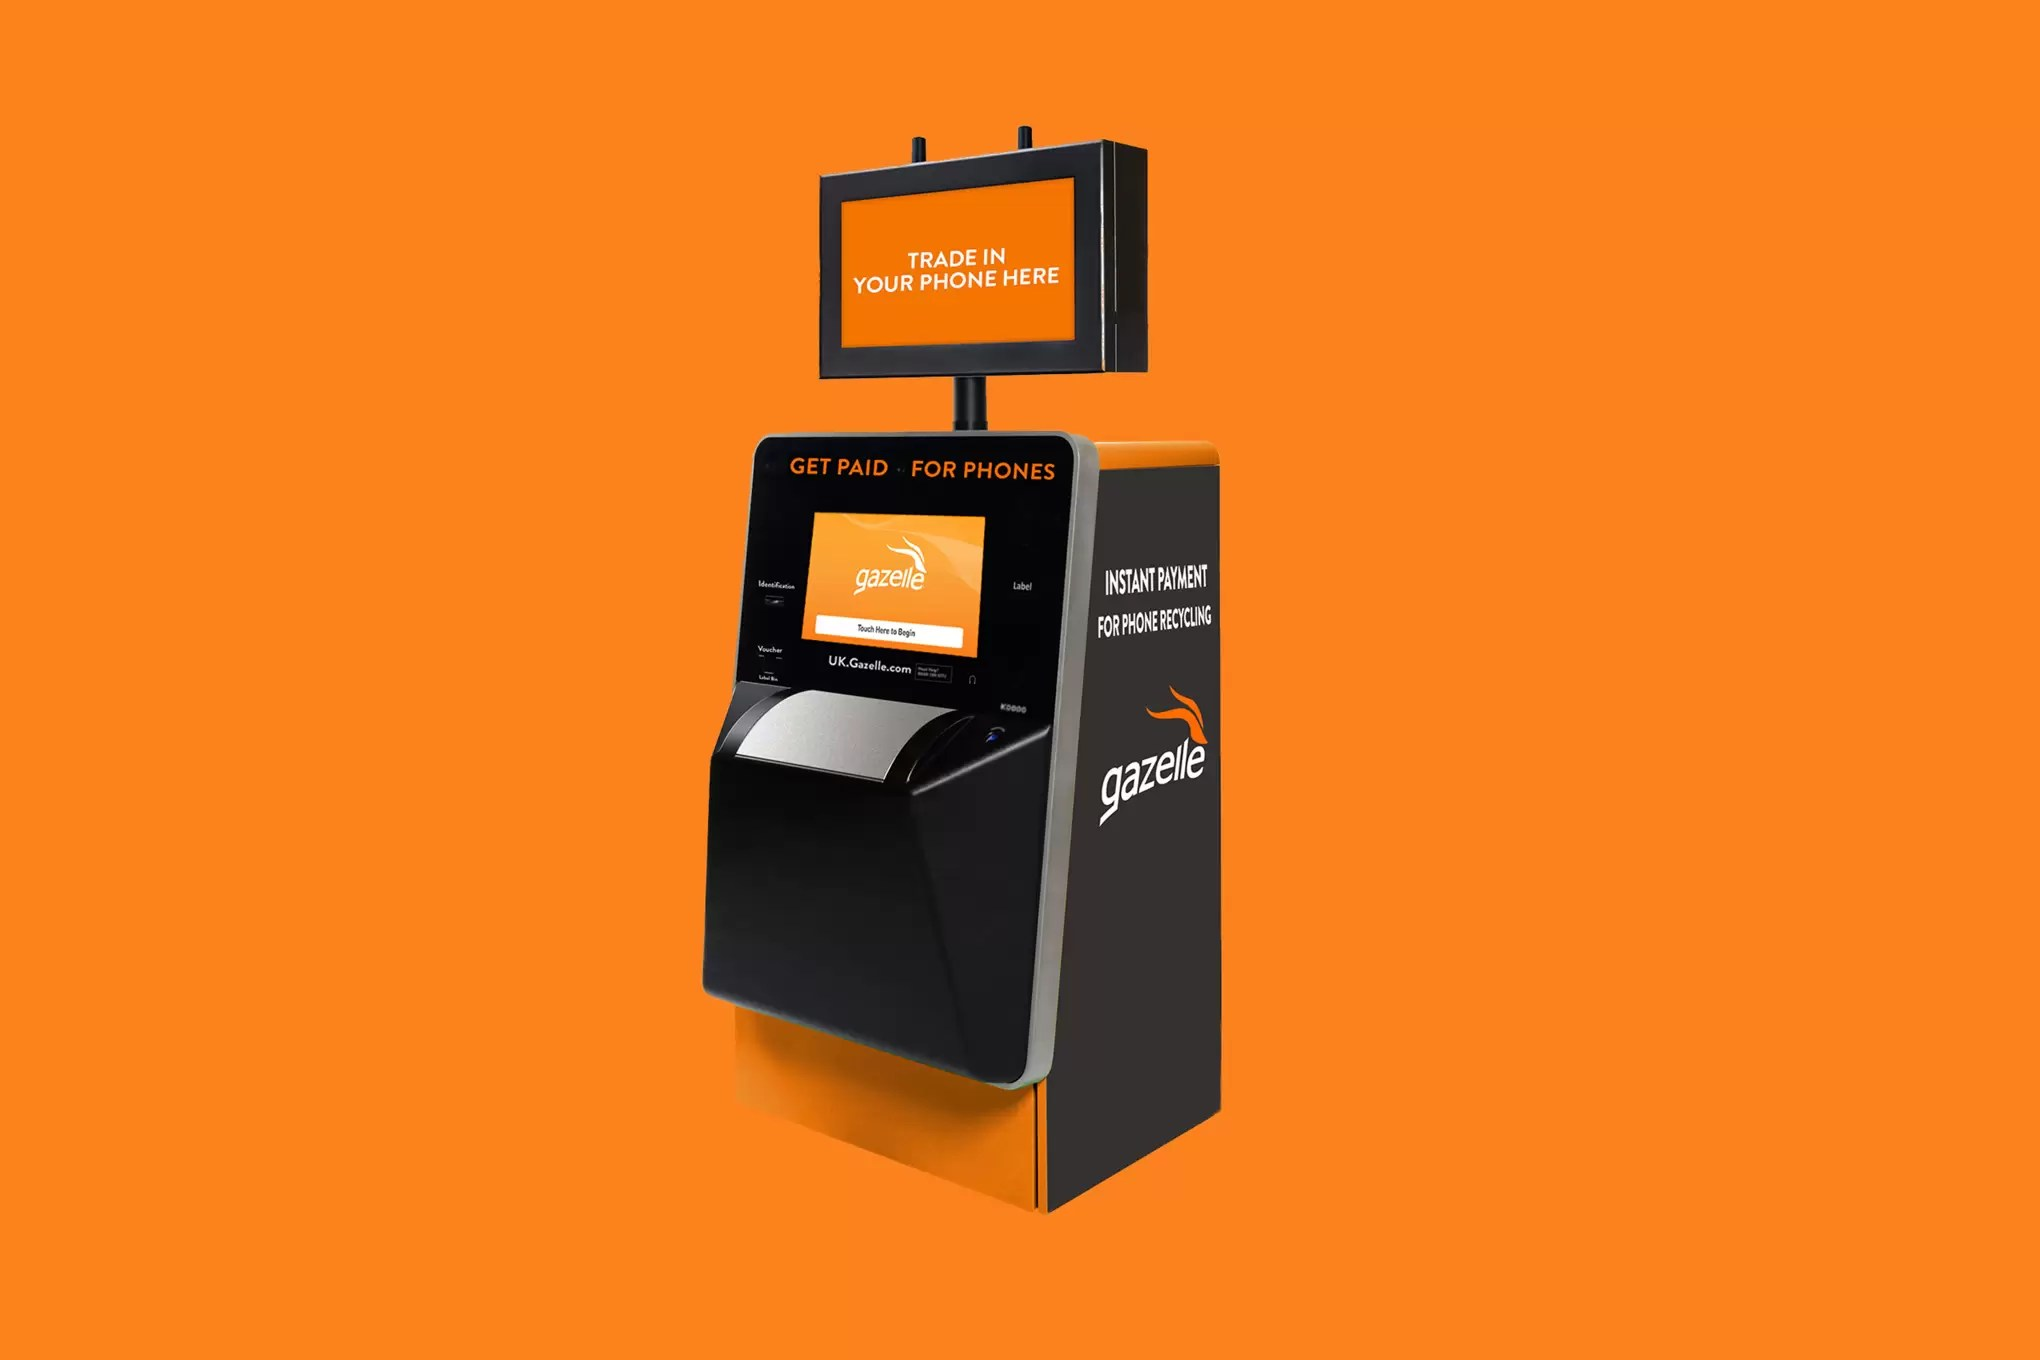 these kiosks will pay